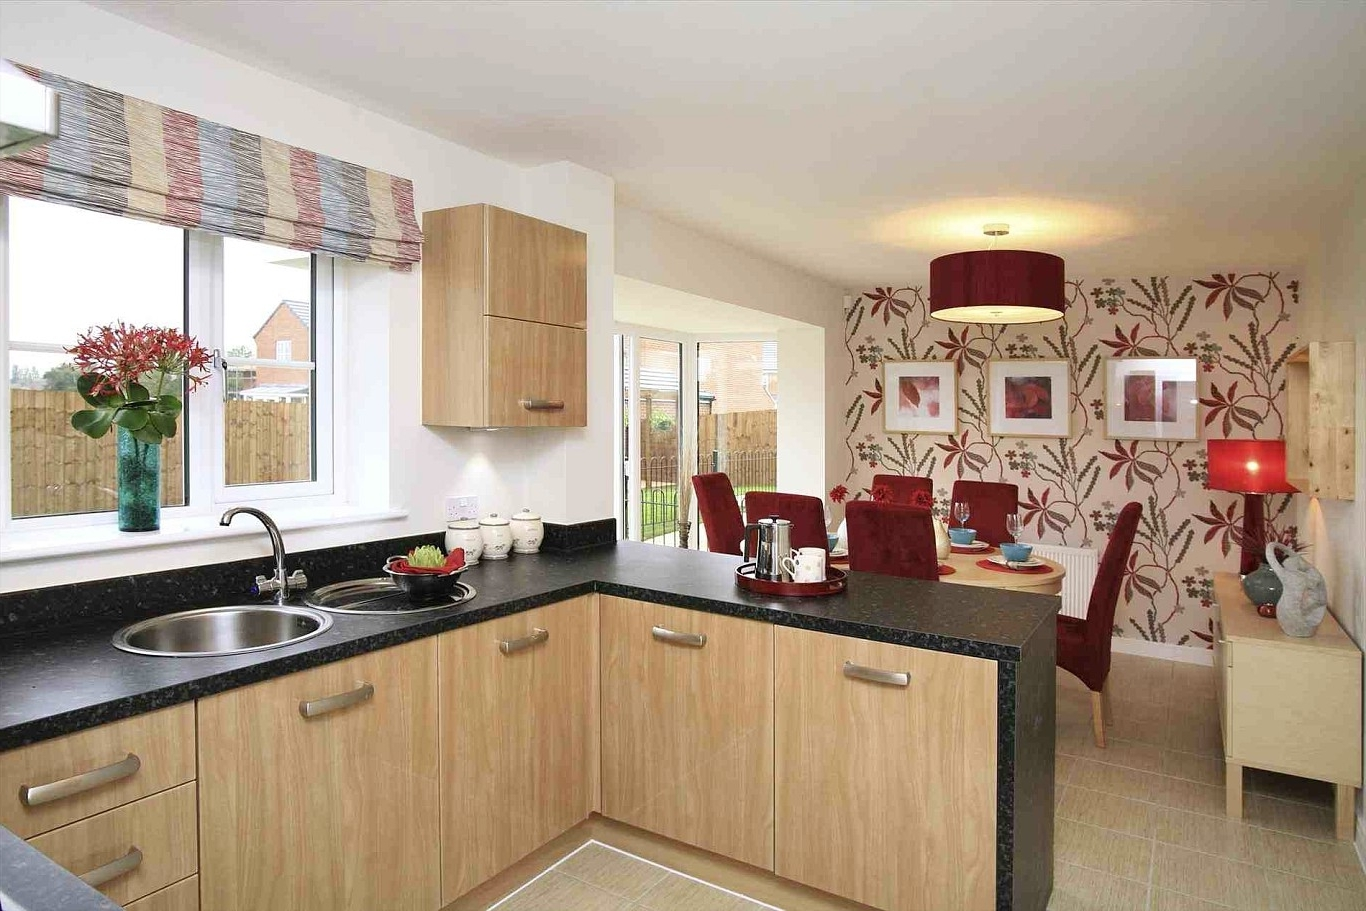 Most Recently Released Sofas For Kitchen Diner Inside Kitchen Diner Sofa Ideas Narrow Kitchen Diner Ideas Small Kitchen (View 8 of 15)